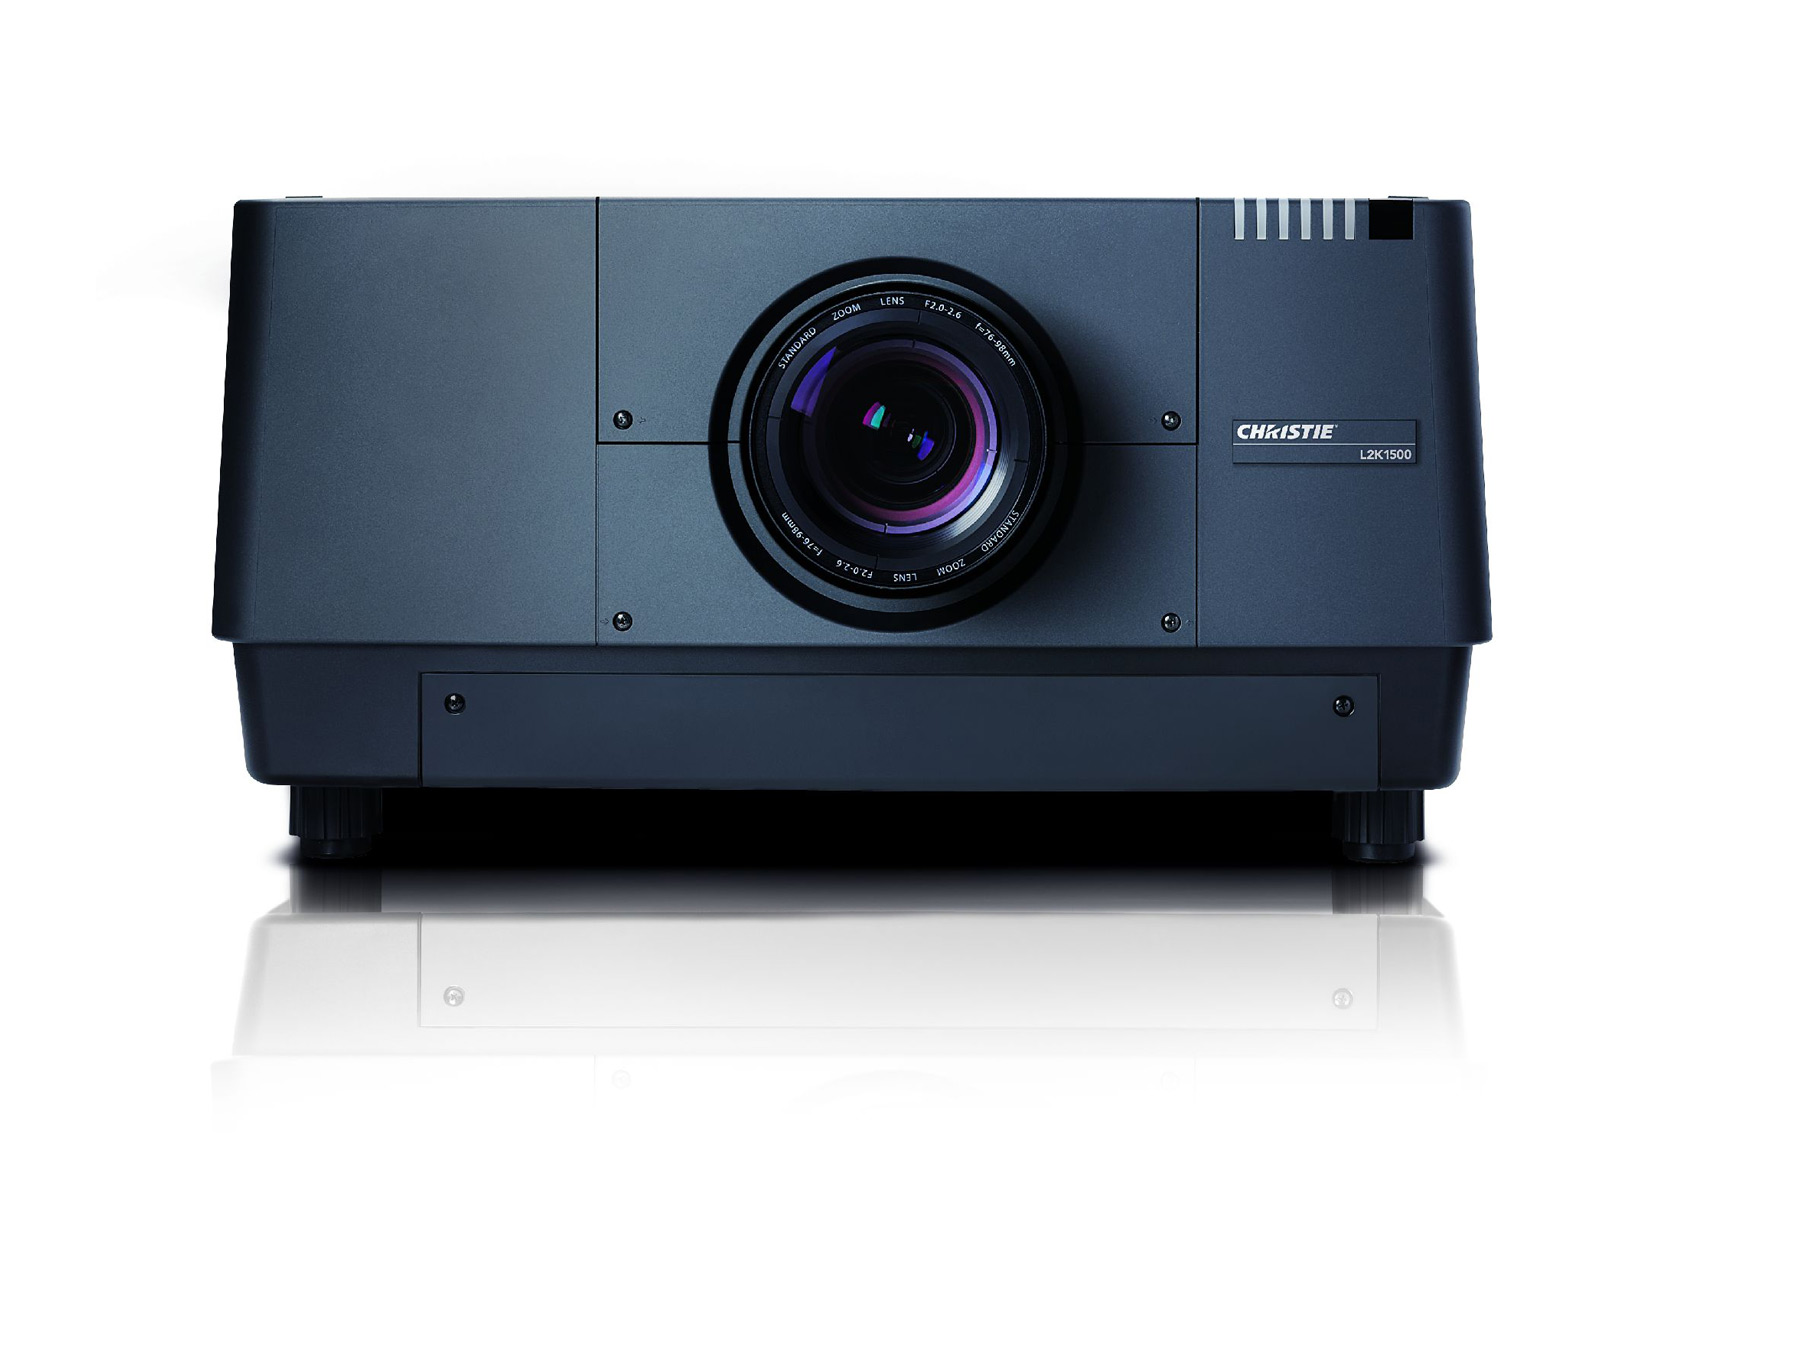 /globalassets/.catalog/products/images/christie-l2k1500/gallery/christie-l2k-1500-3-lcd-digital-projector-image-16.jpg